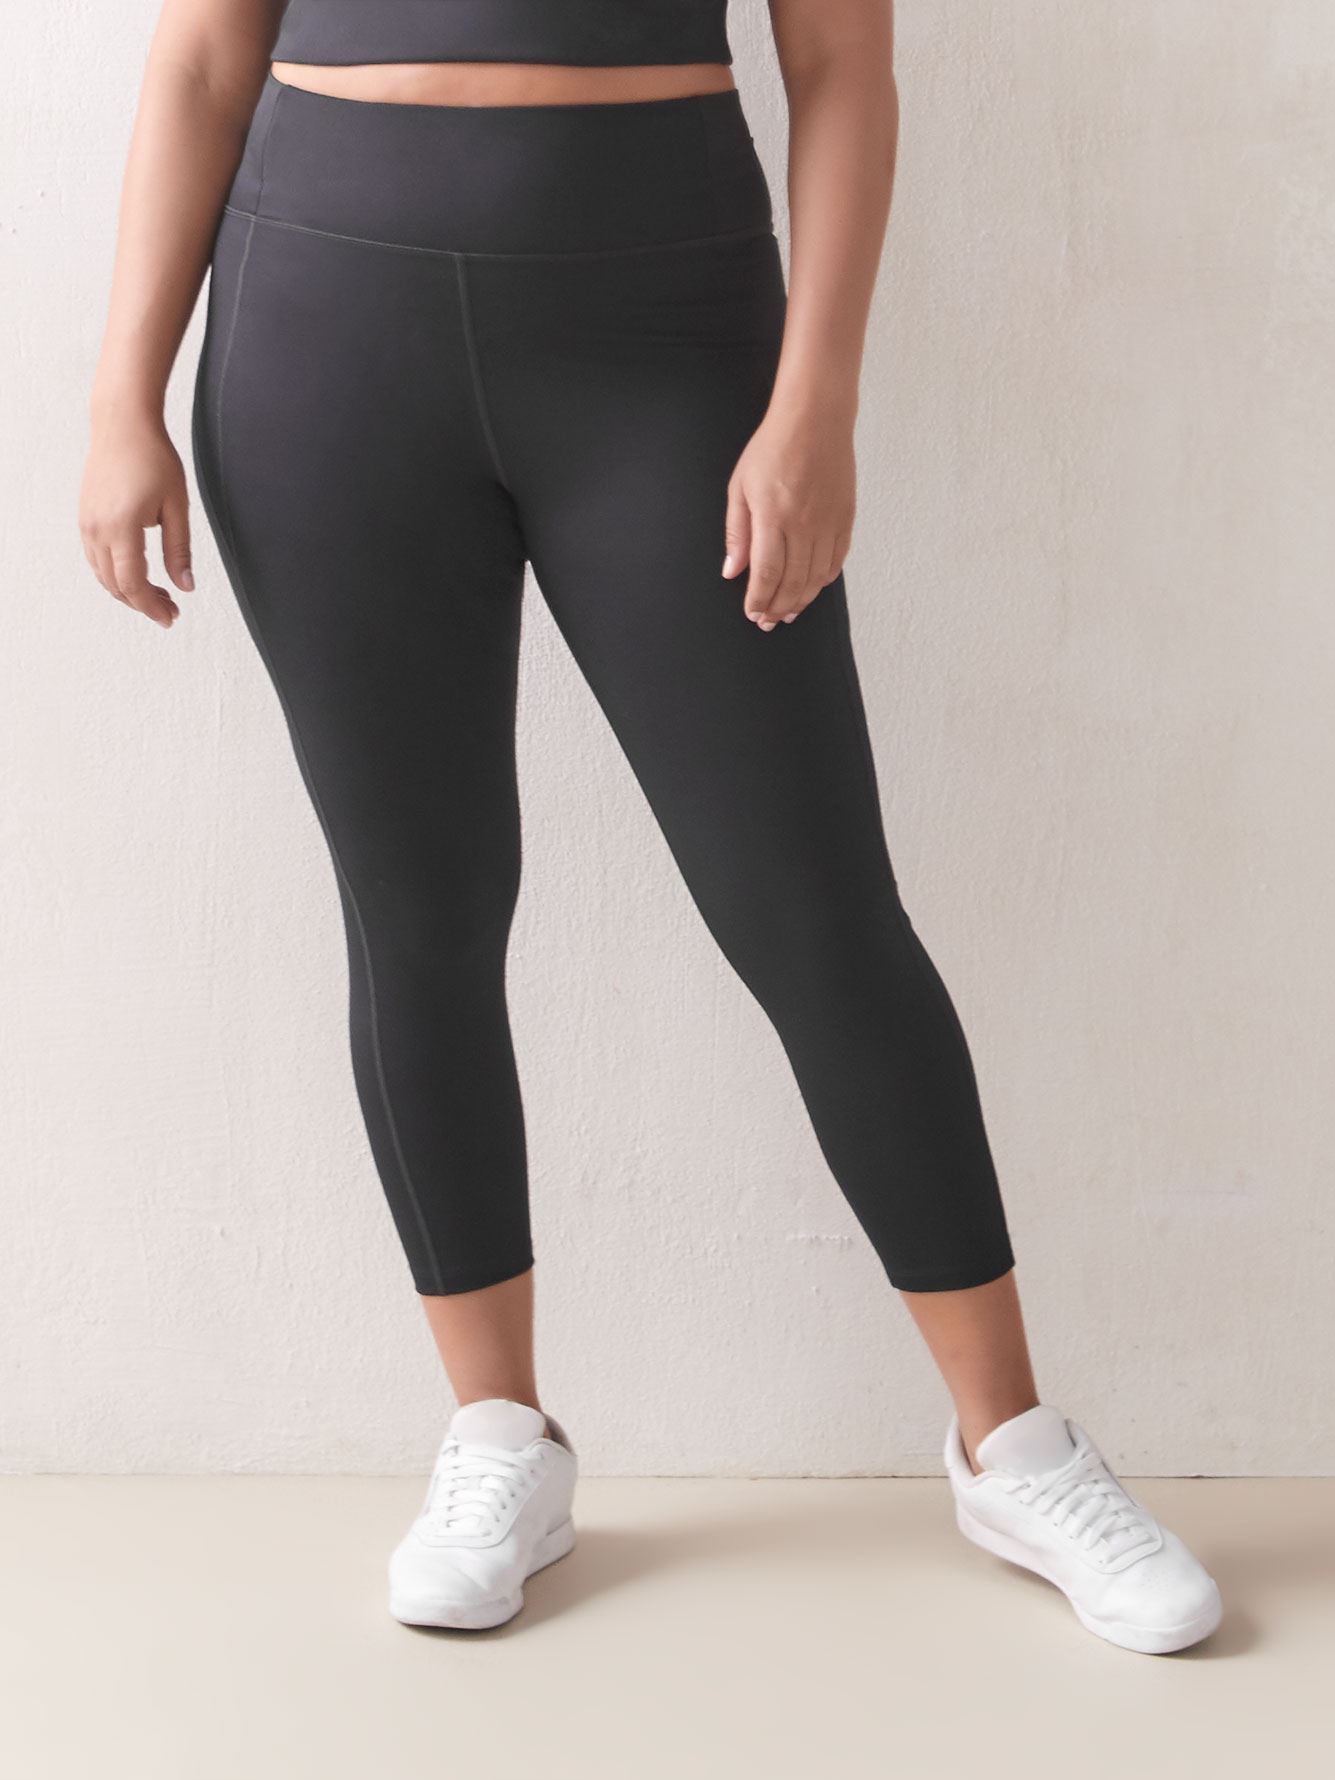 Black High-Rise 7/8 Compression Legging - Girlfriend Collective